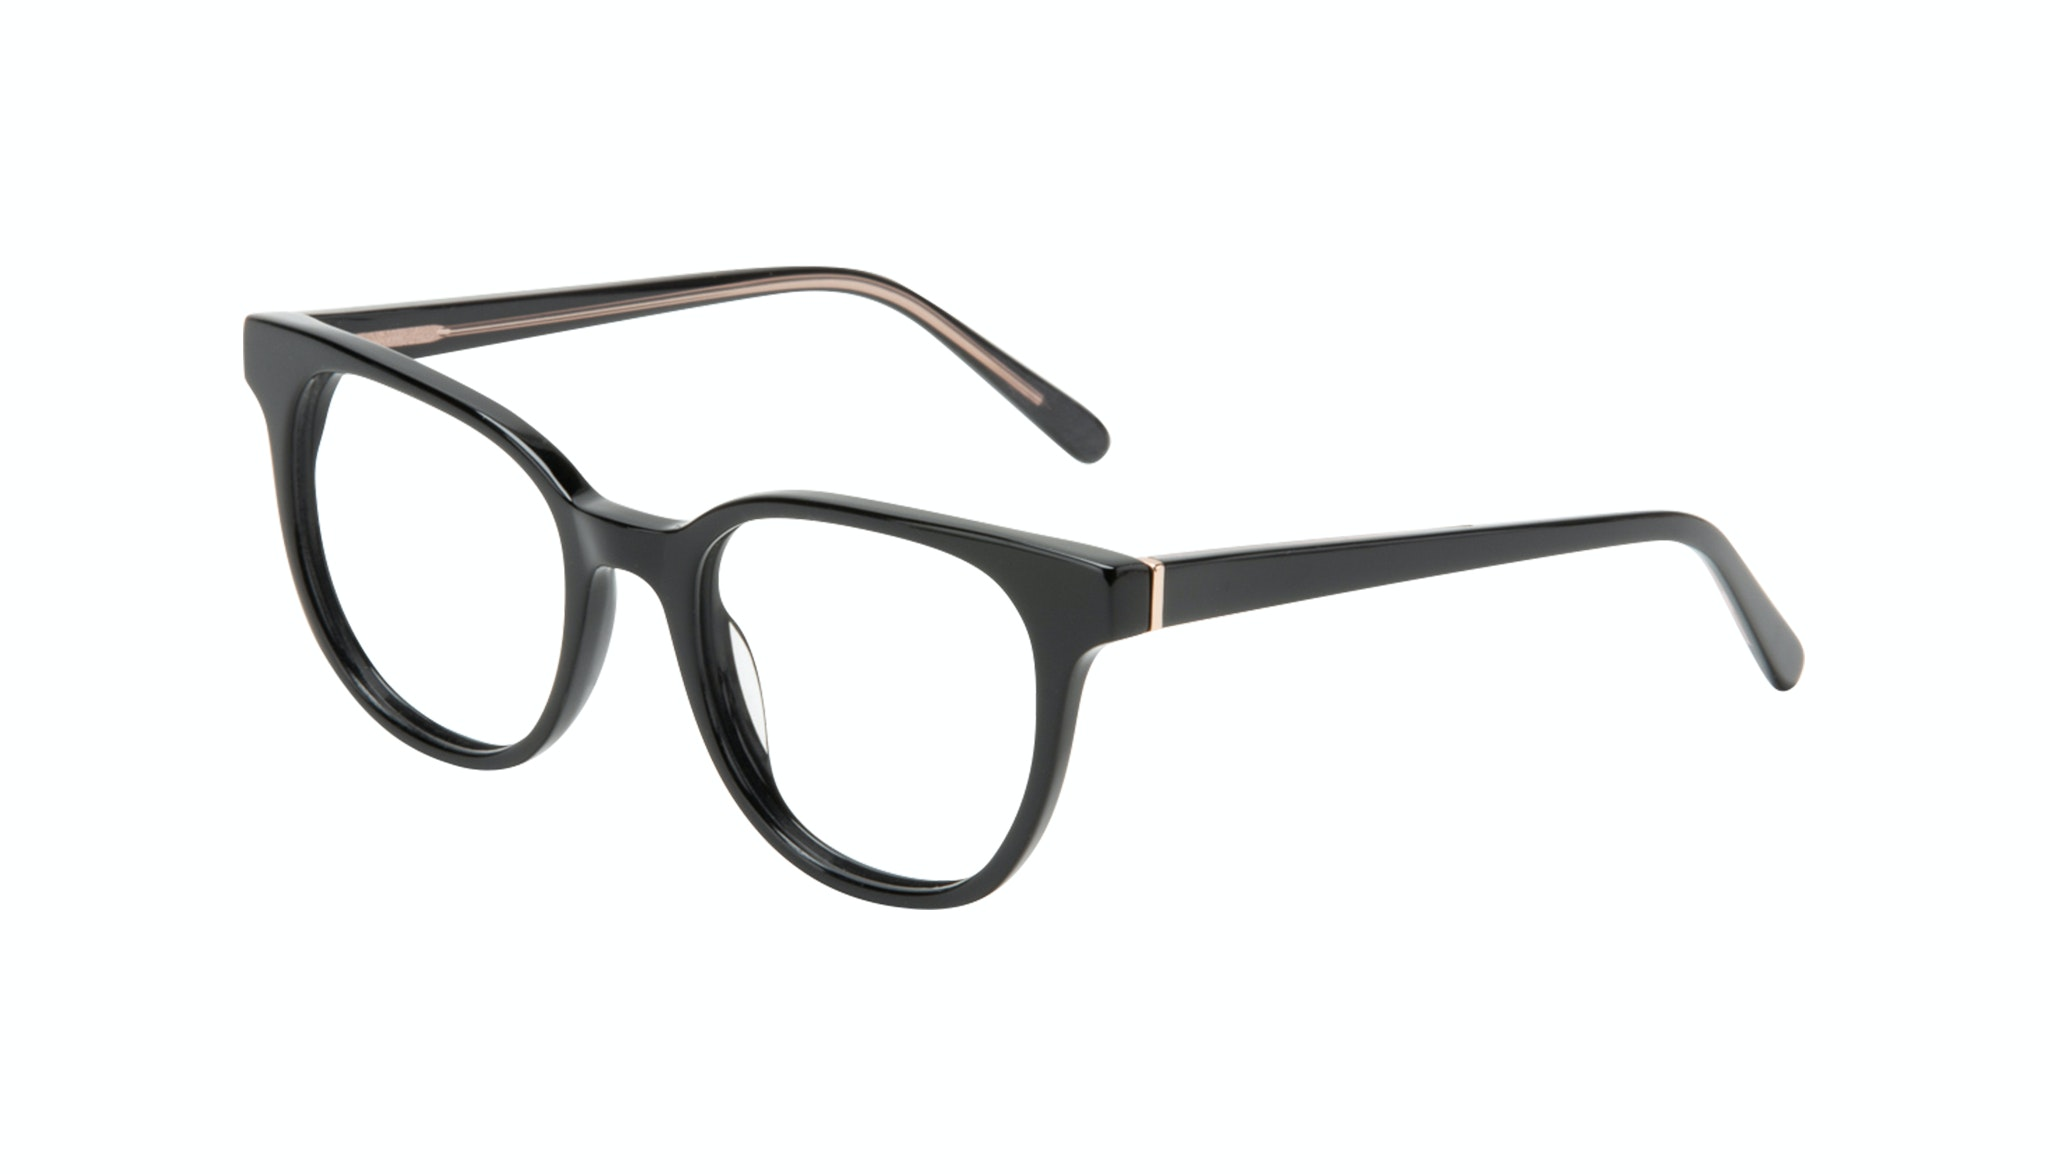 Affordable Fashion Glasses Square Eyeglasses Women Lively Black Tilt